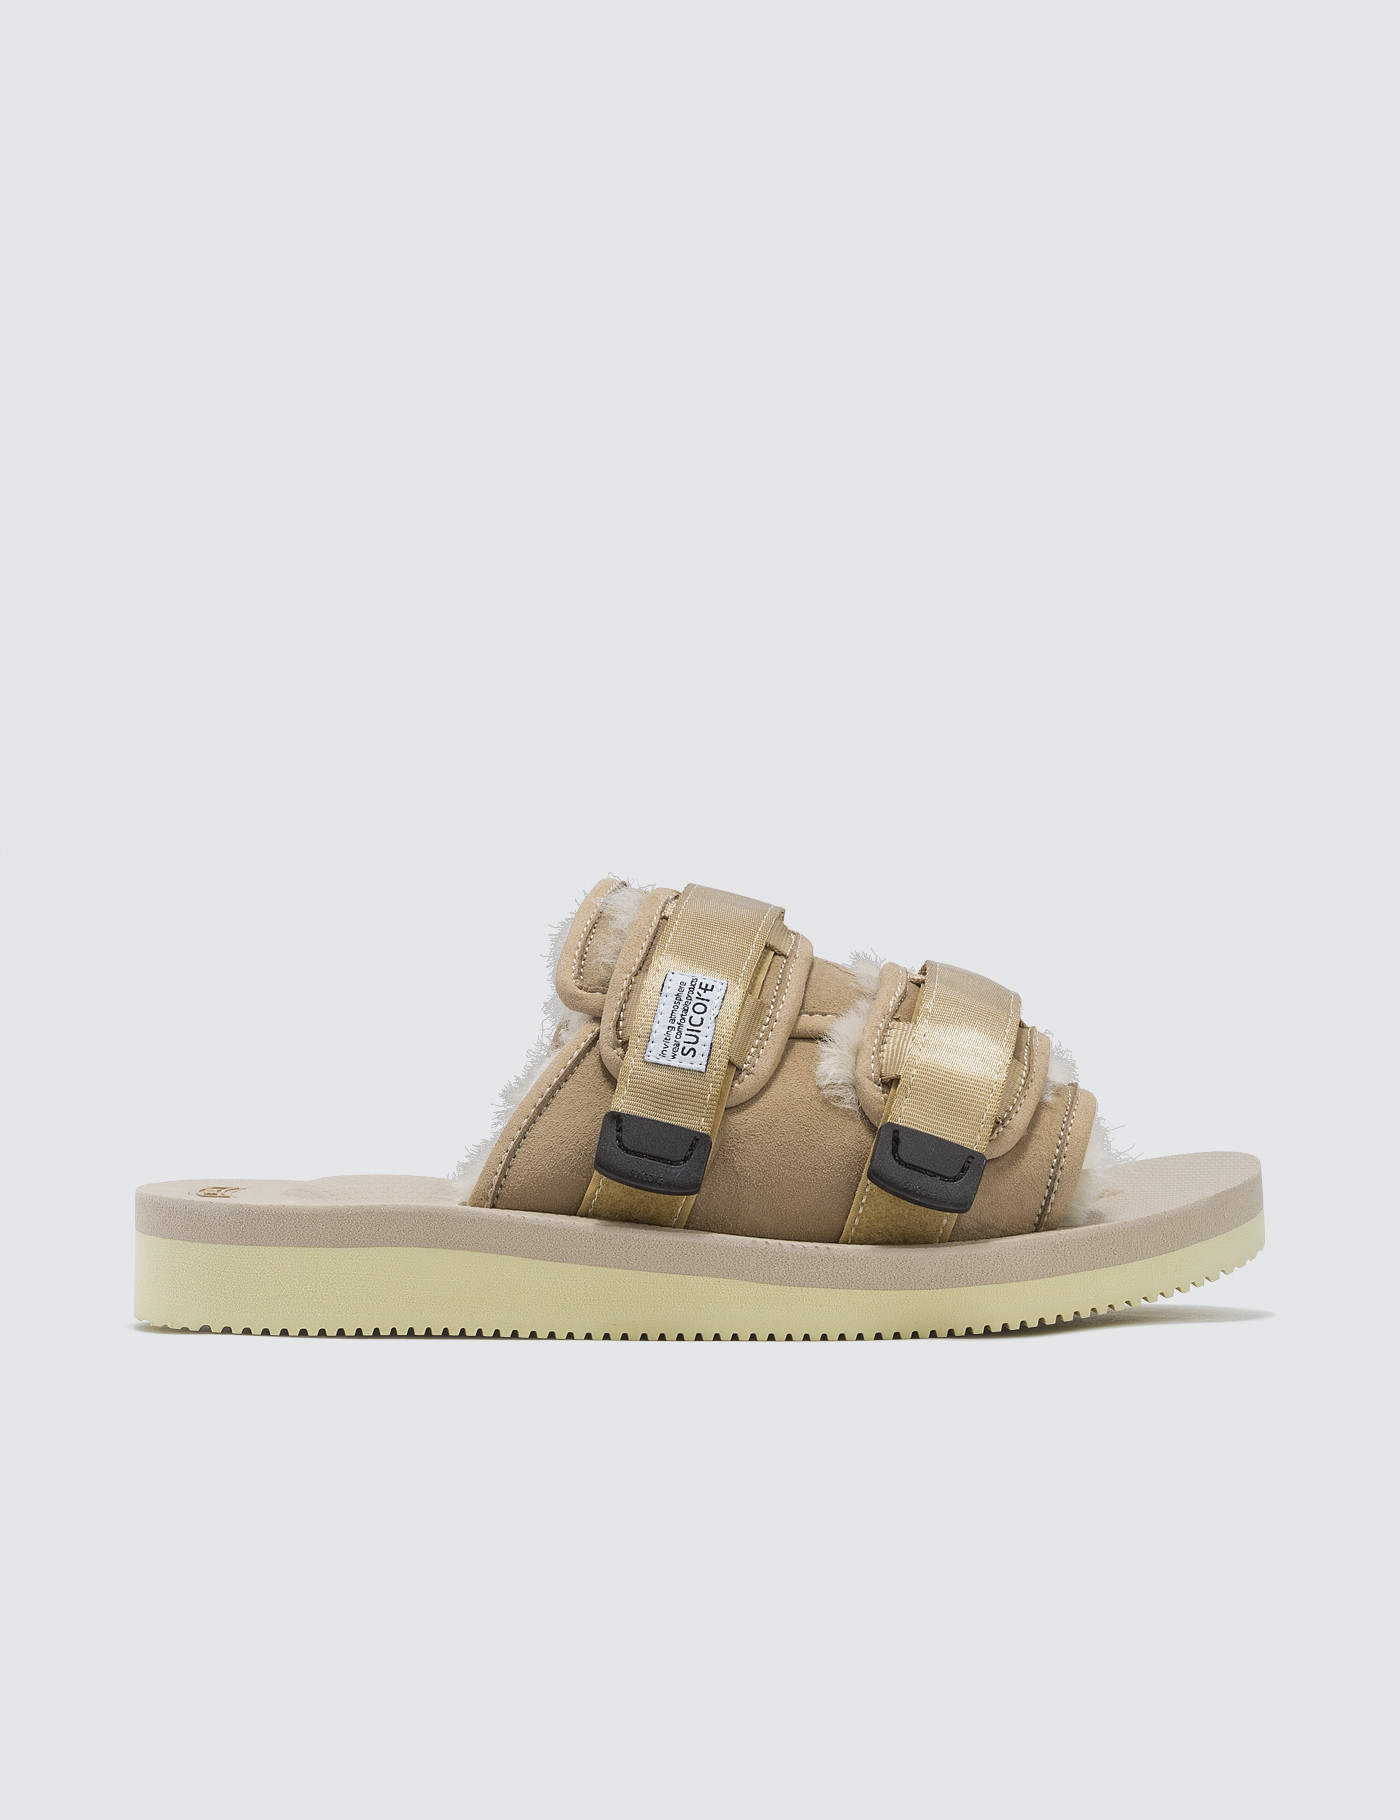 326ccb3dbf28 Buy Original Suicoke MOTO-VM2 Sandals at Indonesia